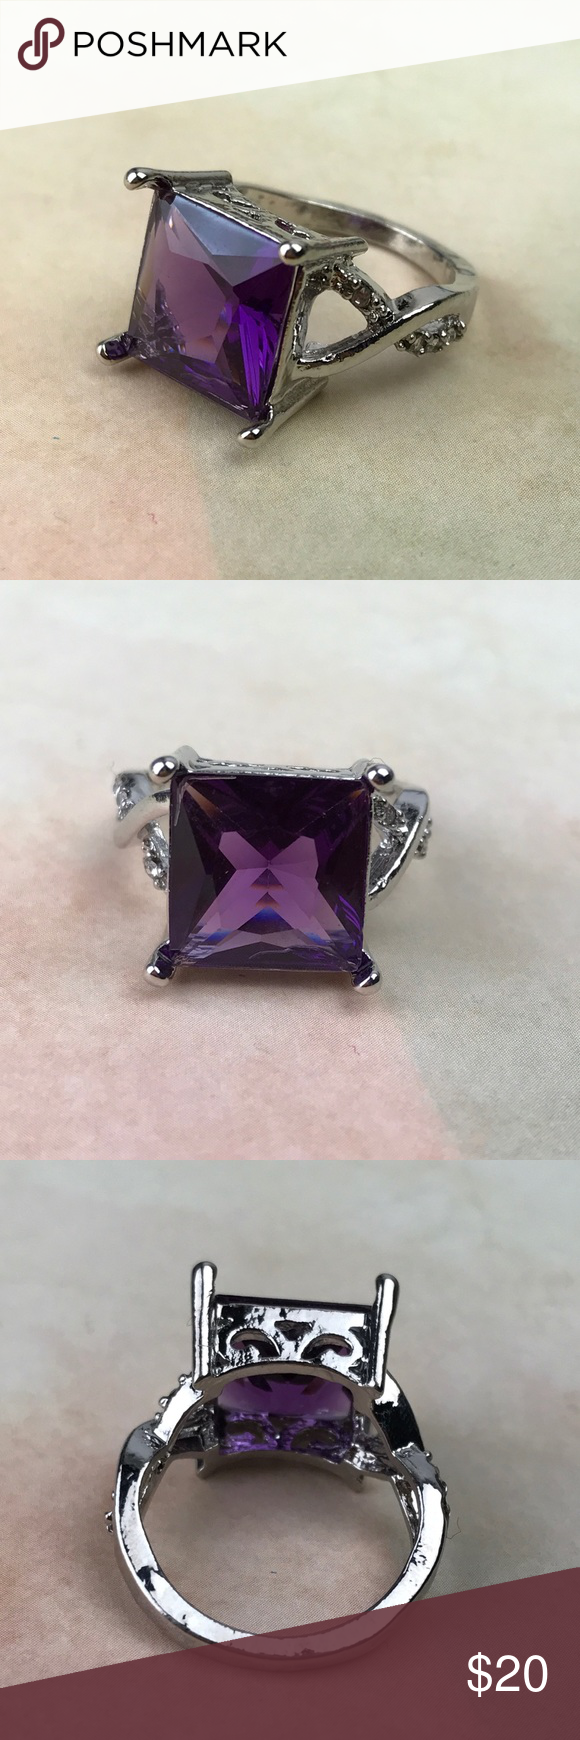 Purple Silver Ring Size 6 It is New Without Tags. Thank